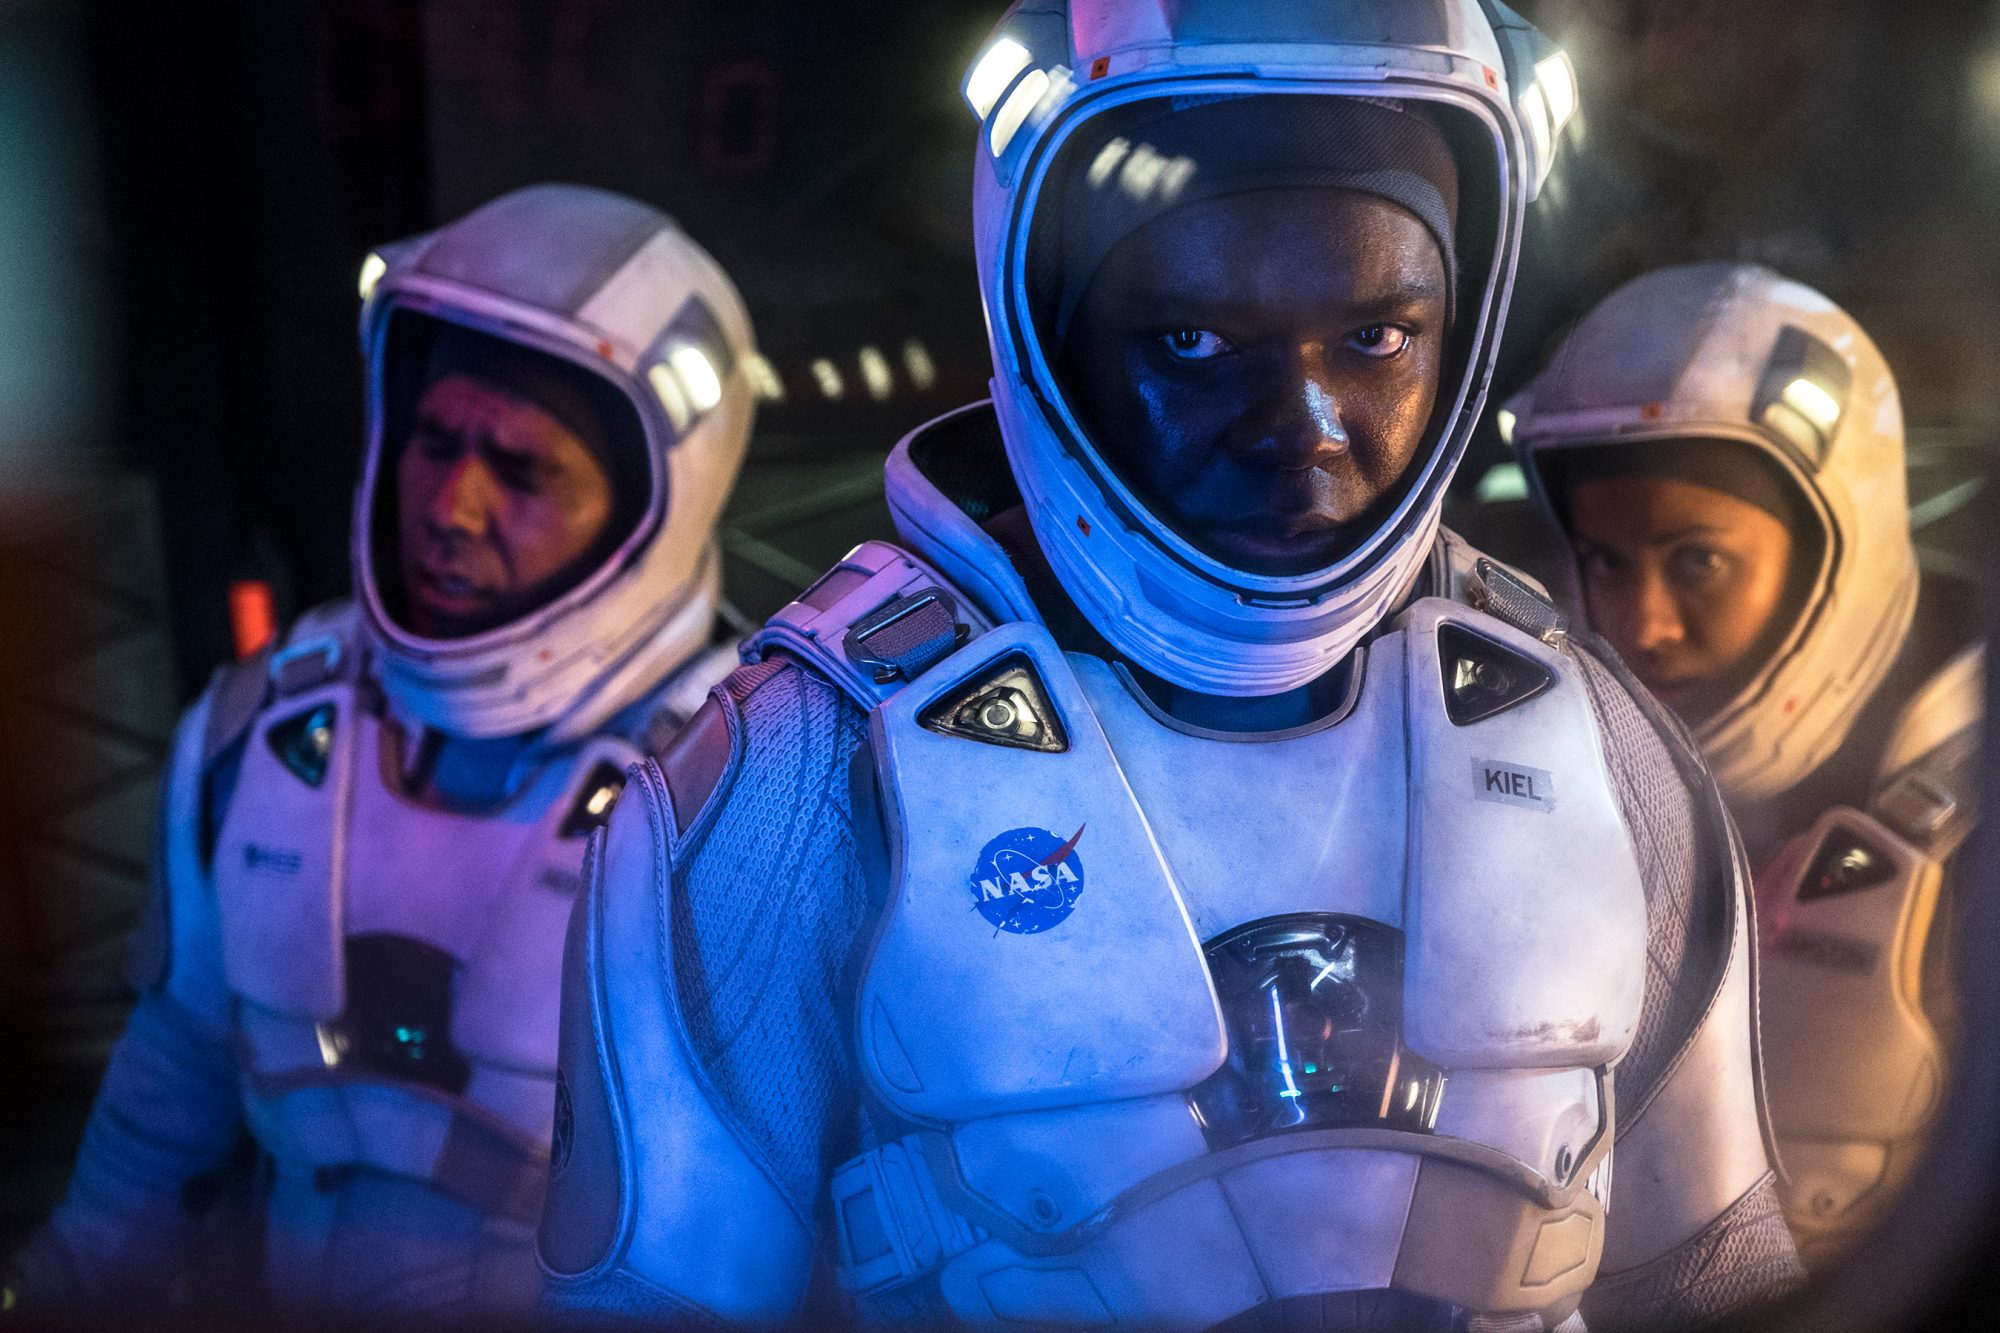 The Worst Movies of 2018: 5. The Cloverfield Paradox